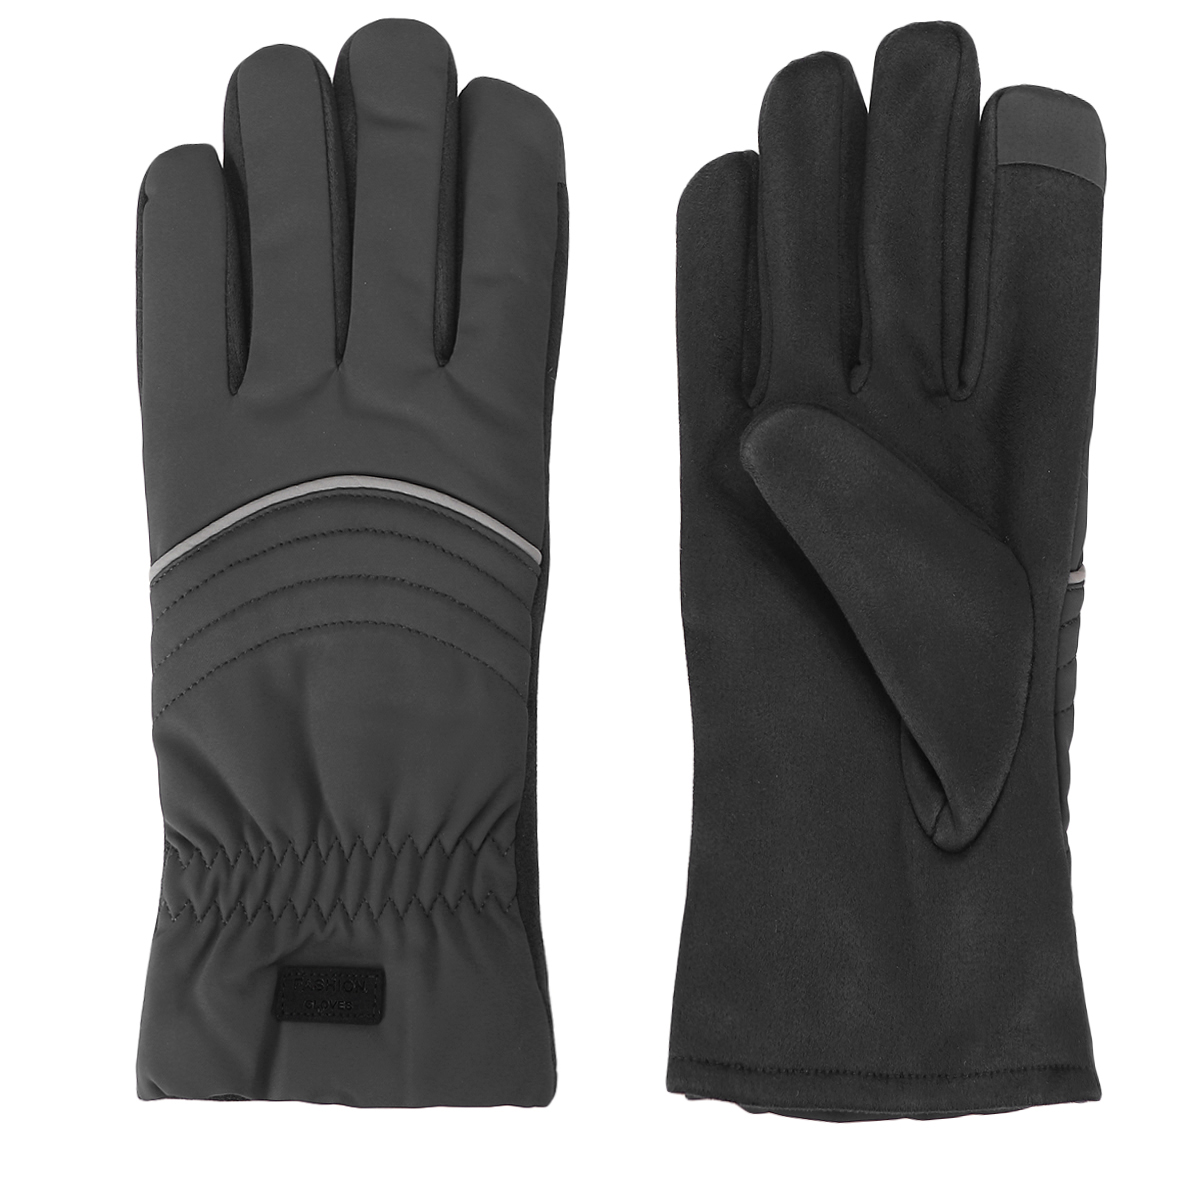 -15 Winter Warm Thermal Gloves Ski Snow Snowboard Cycling Touch Screen Waterproof